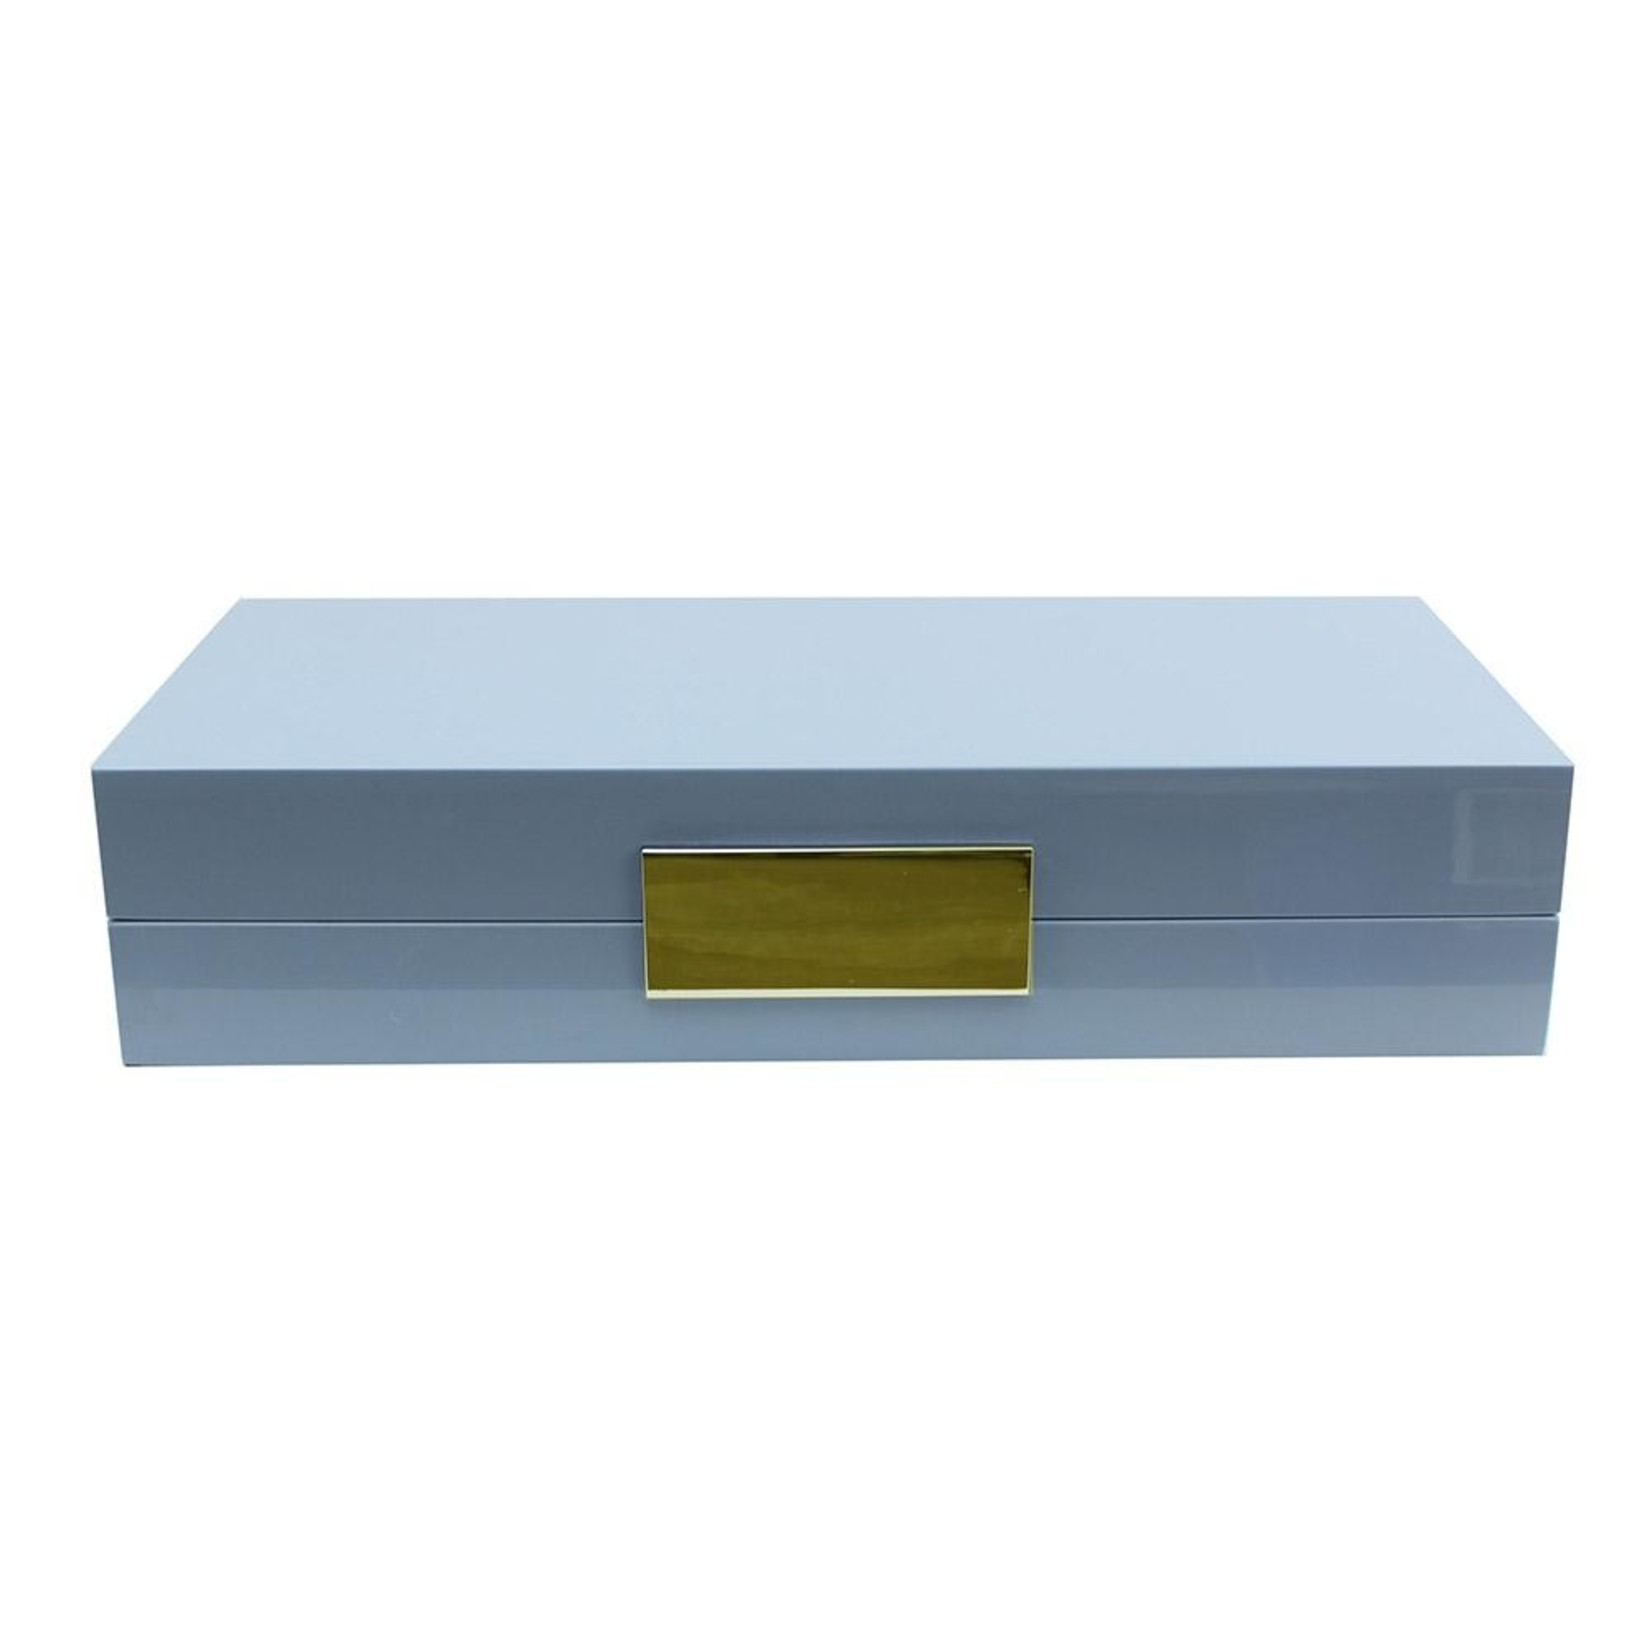 Addison Ross Pale Blue Lacquer Box with Gold